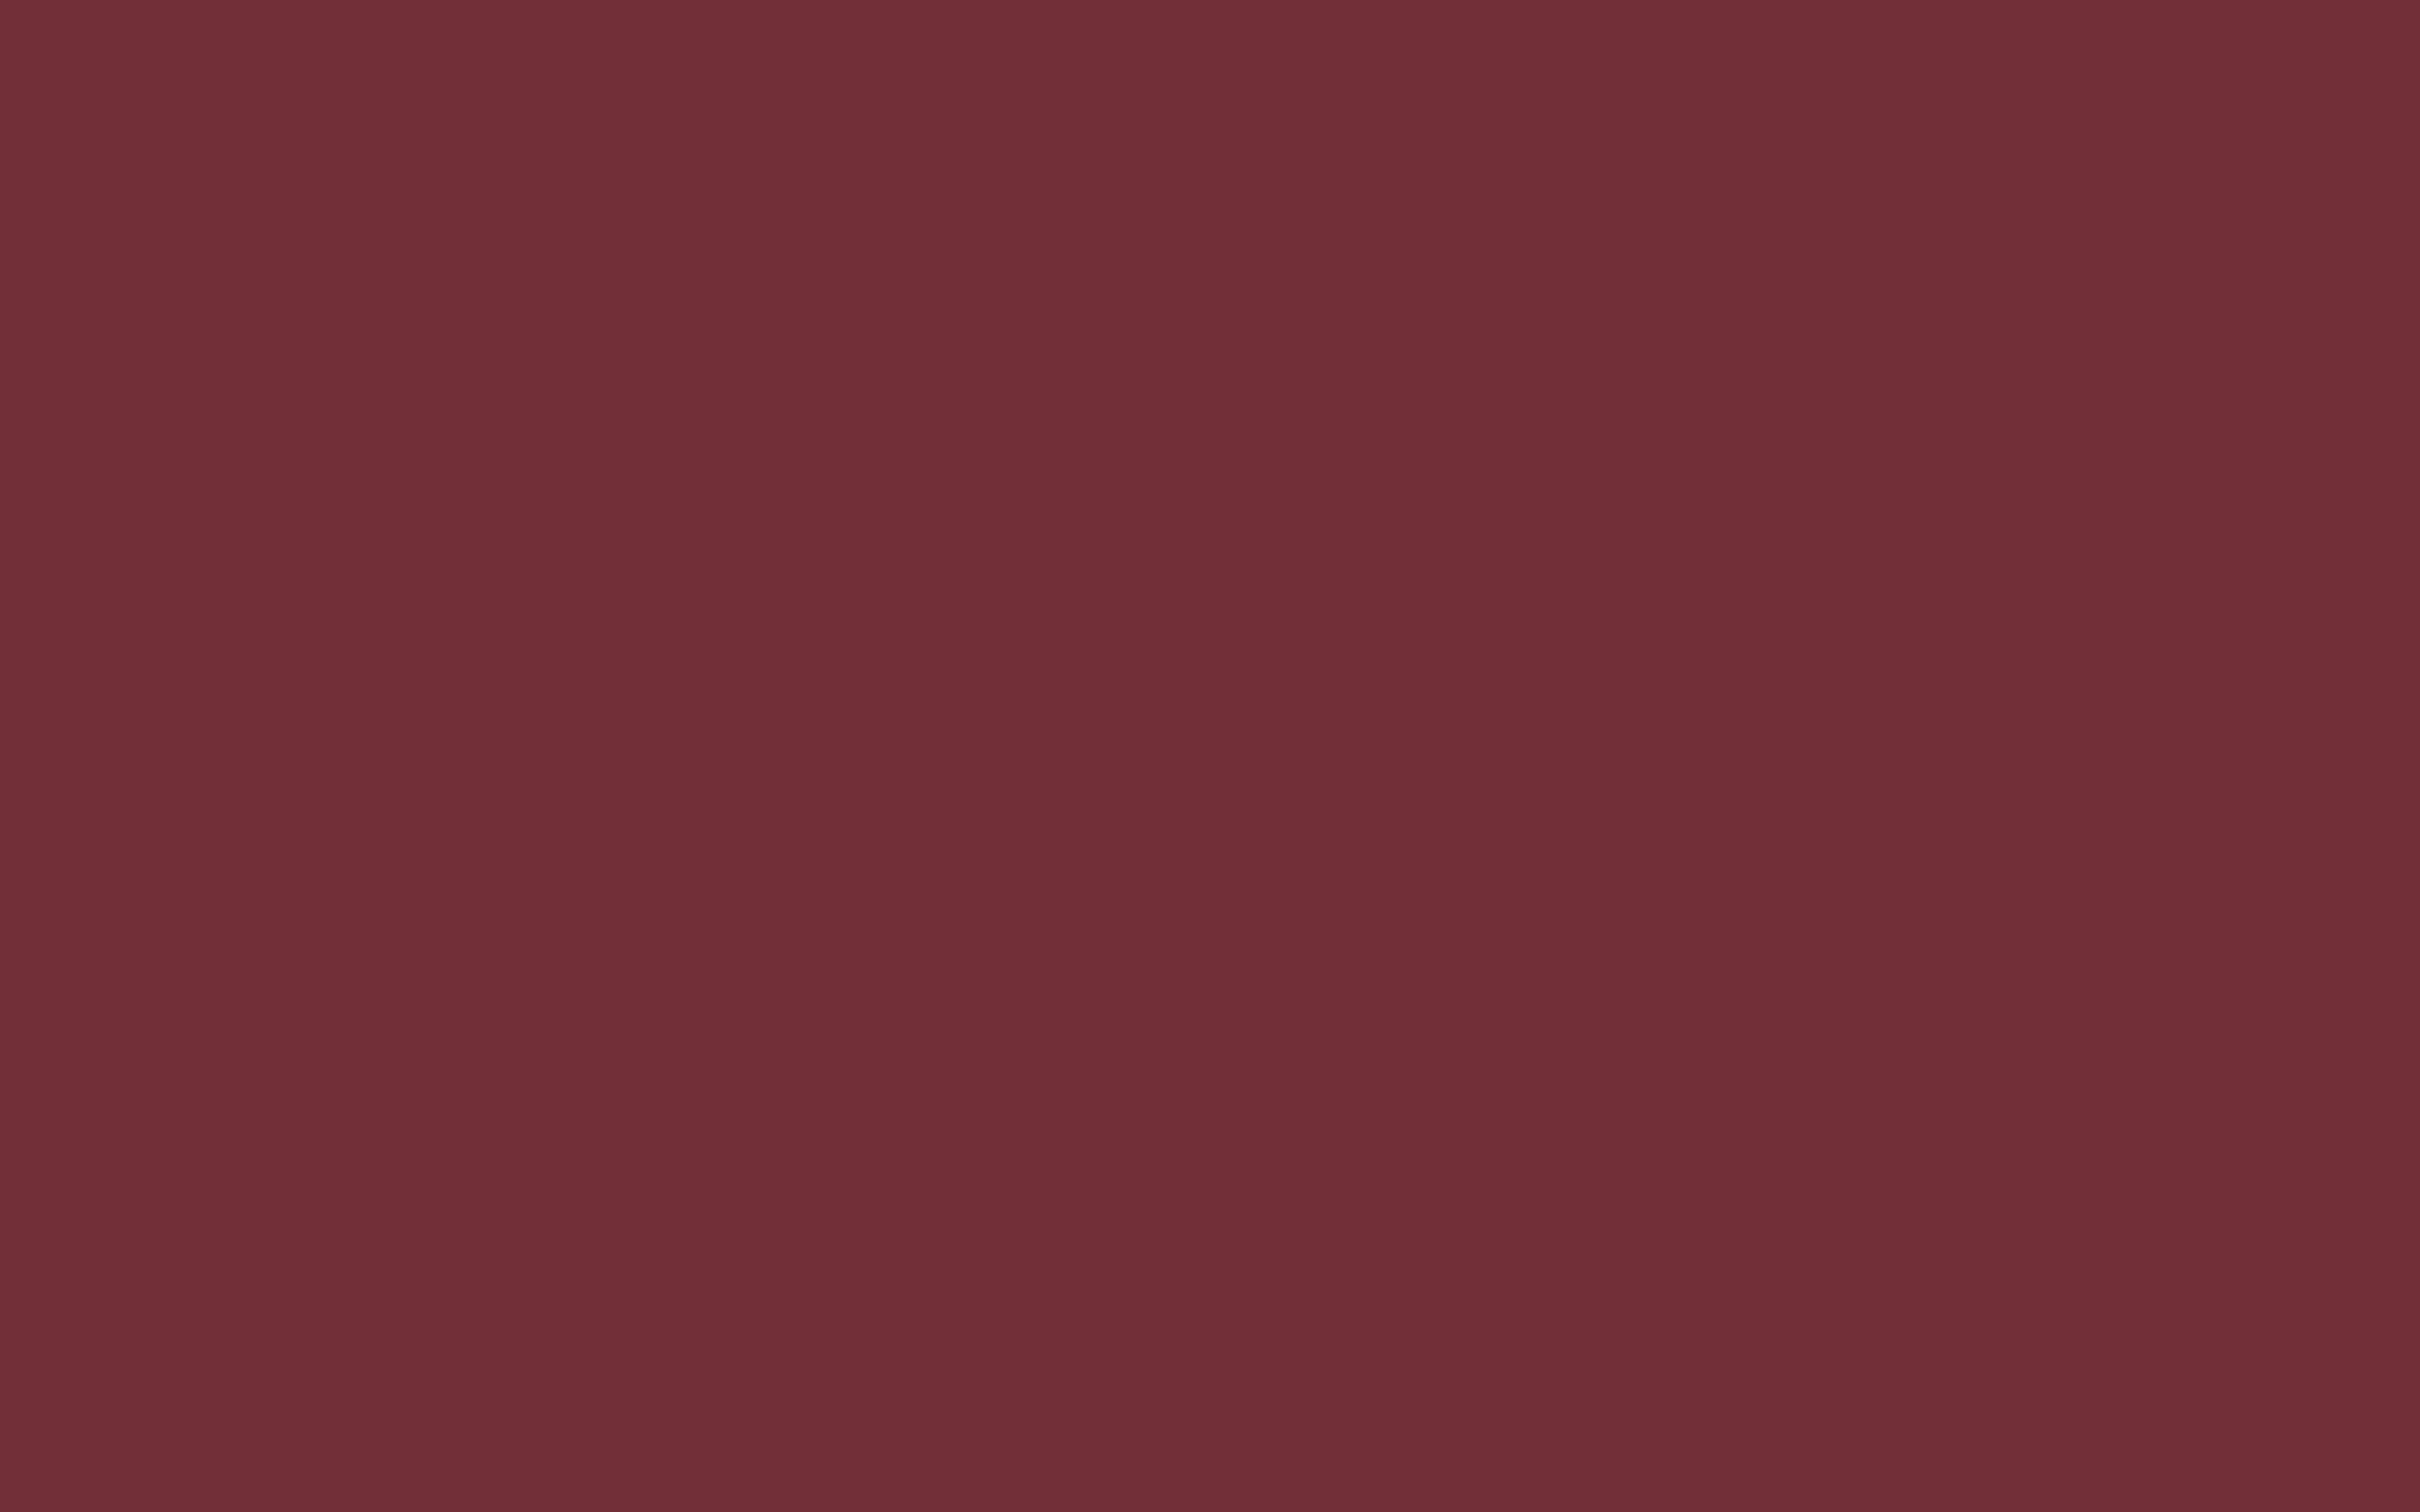 2560x1600 Wine Solid Color Background